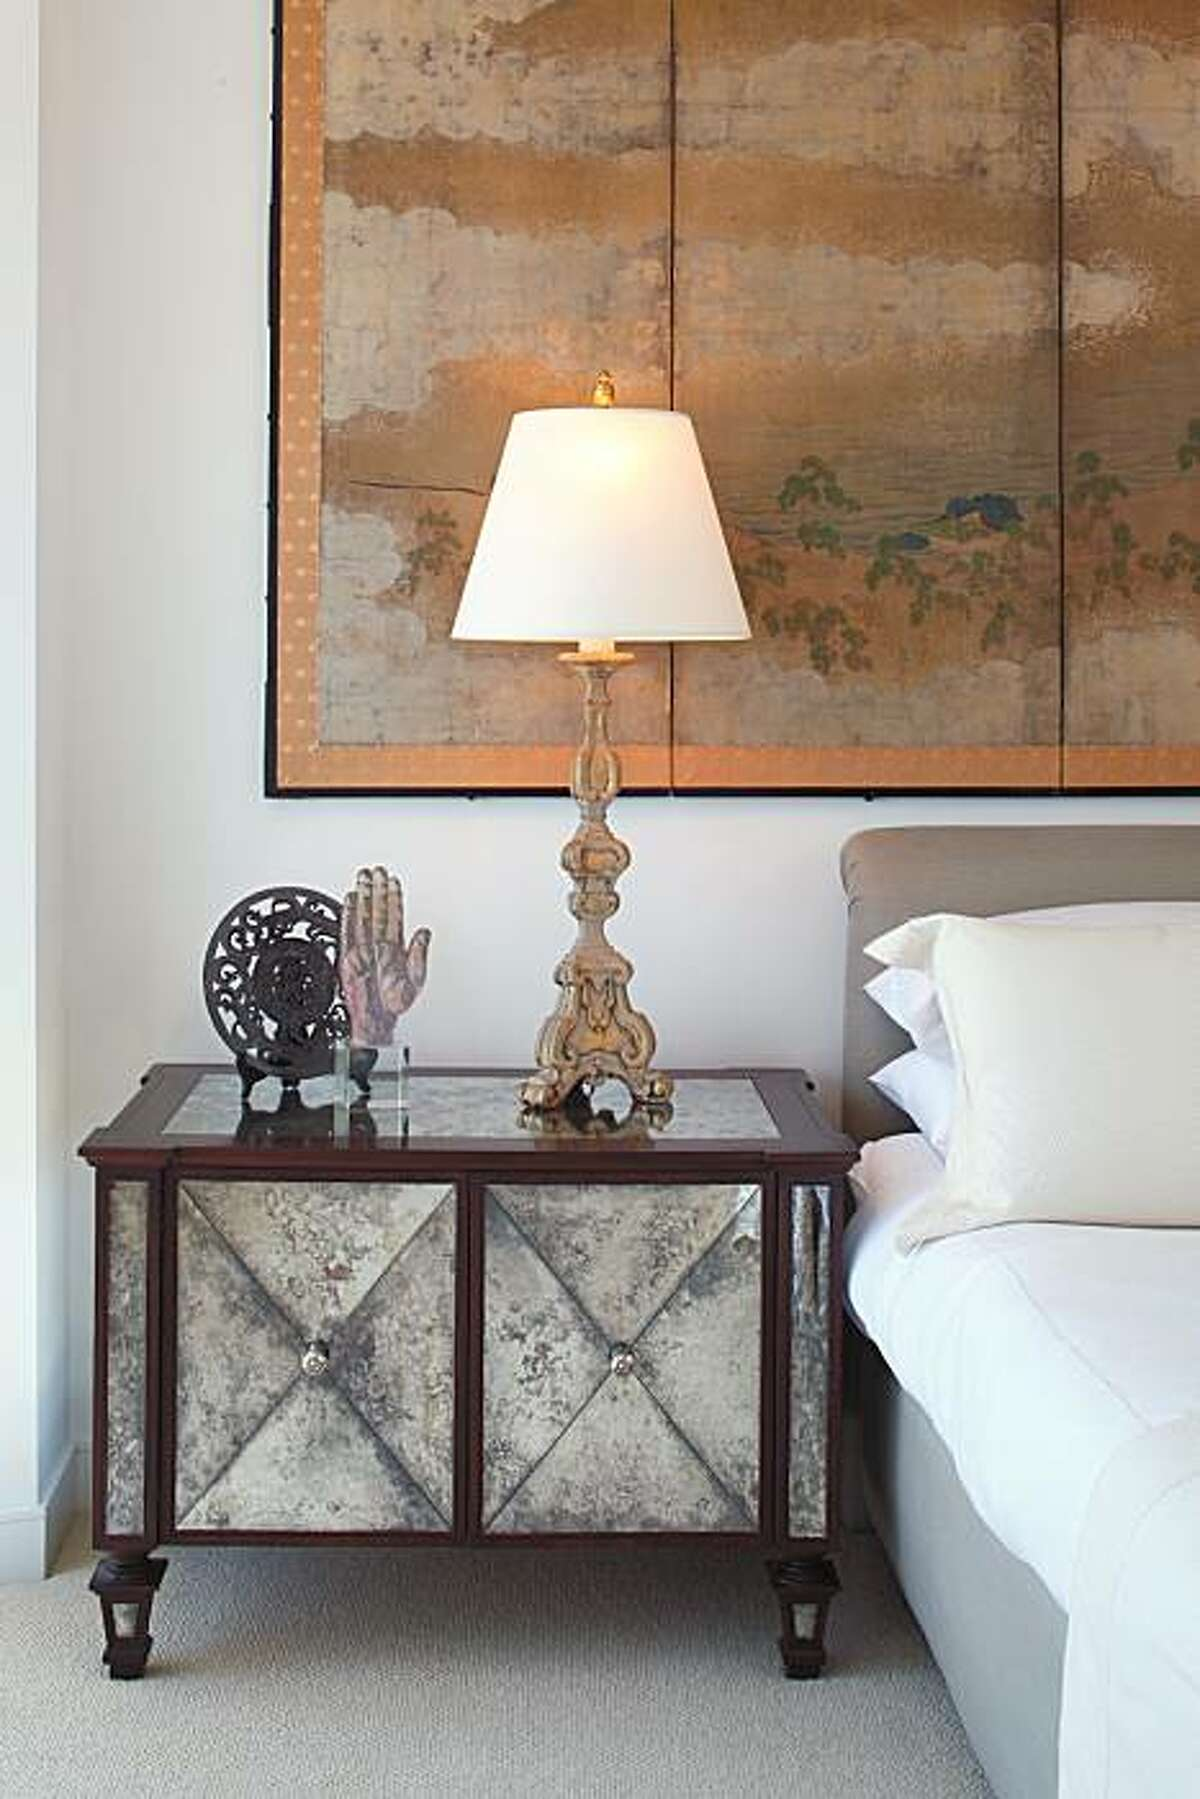 A six-panel Edo-era Japanese screen now hangs above the couple's bed. Two walnut and antique-mirror side tables that Turner designed now flank the bed as nightstands.